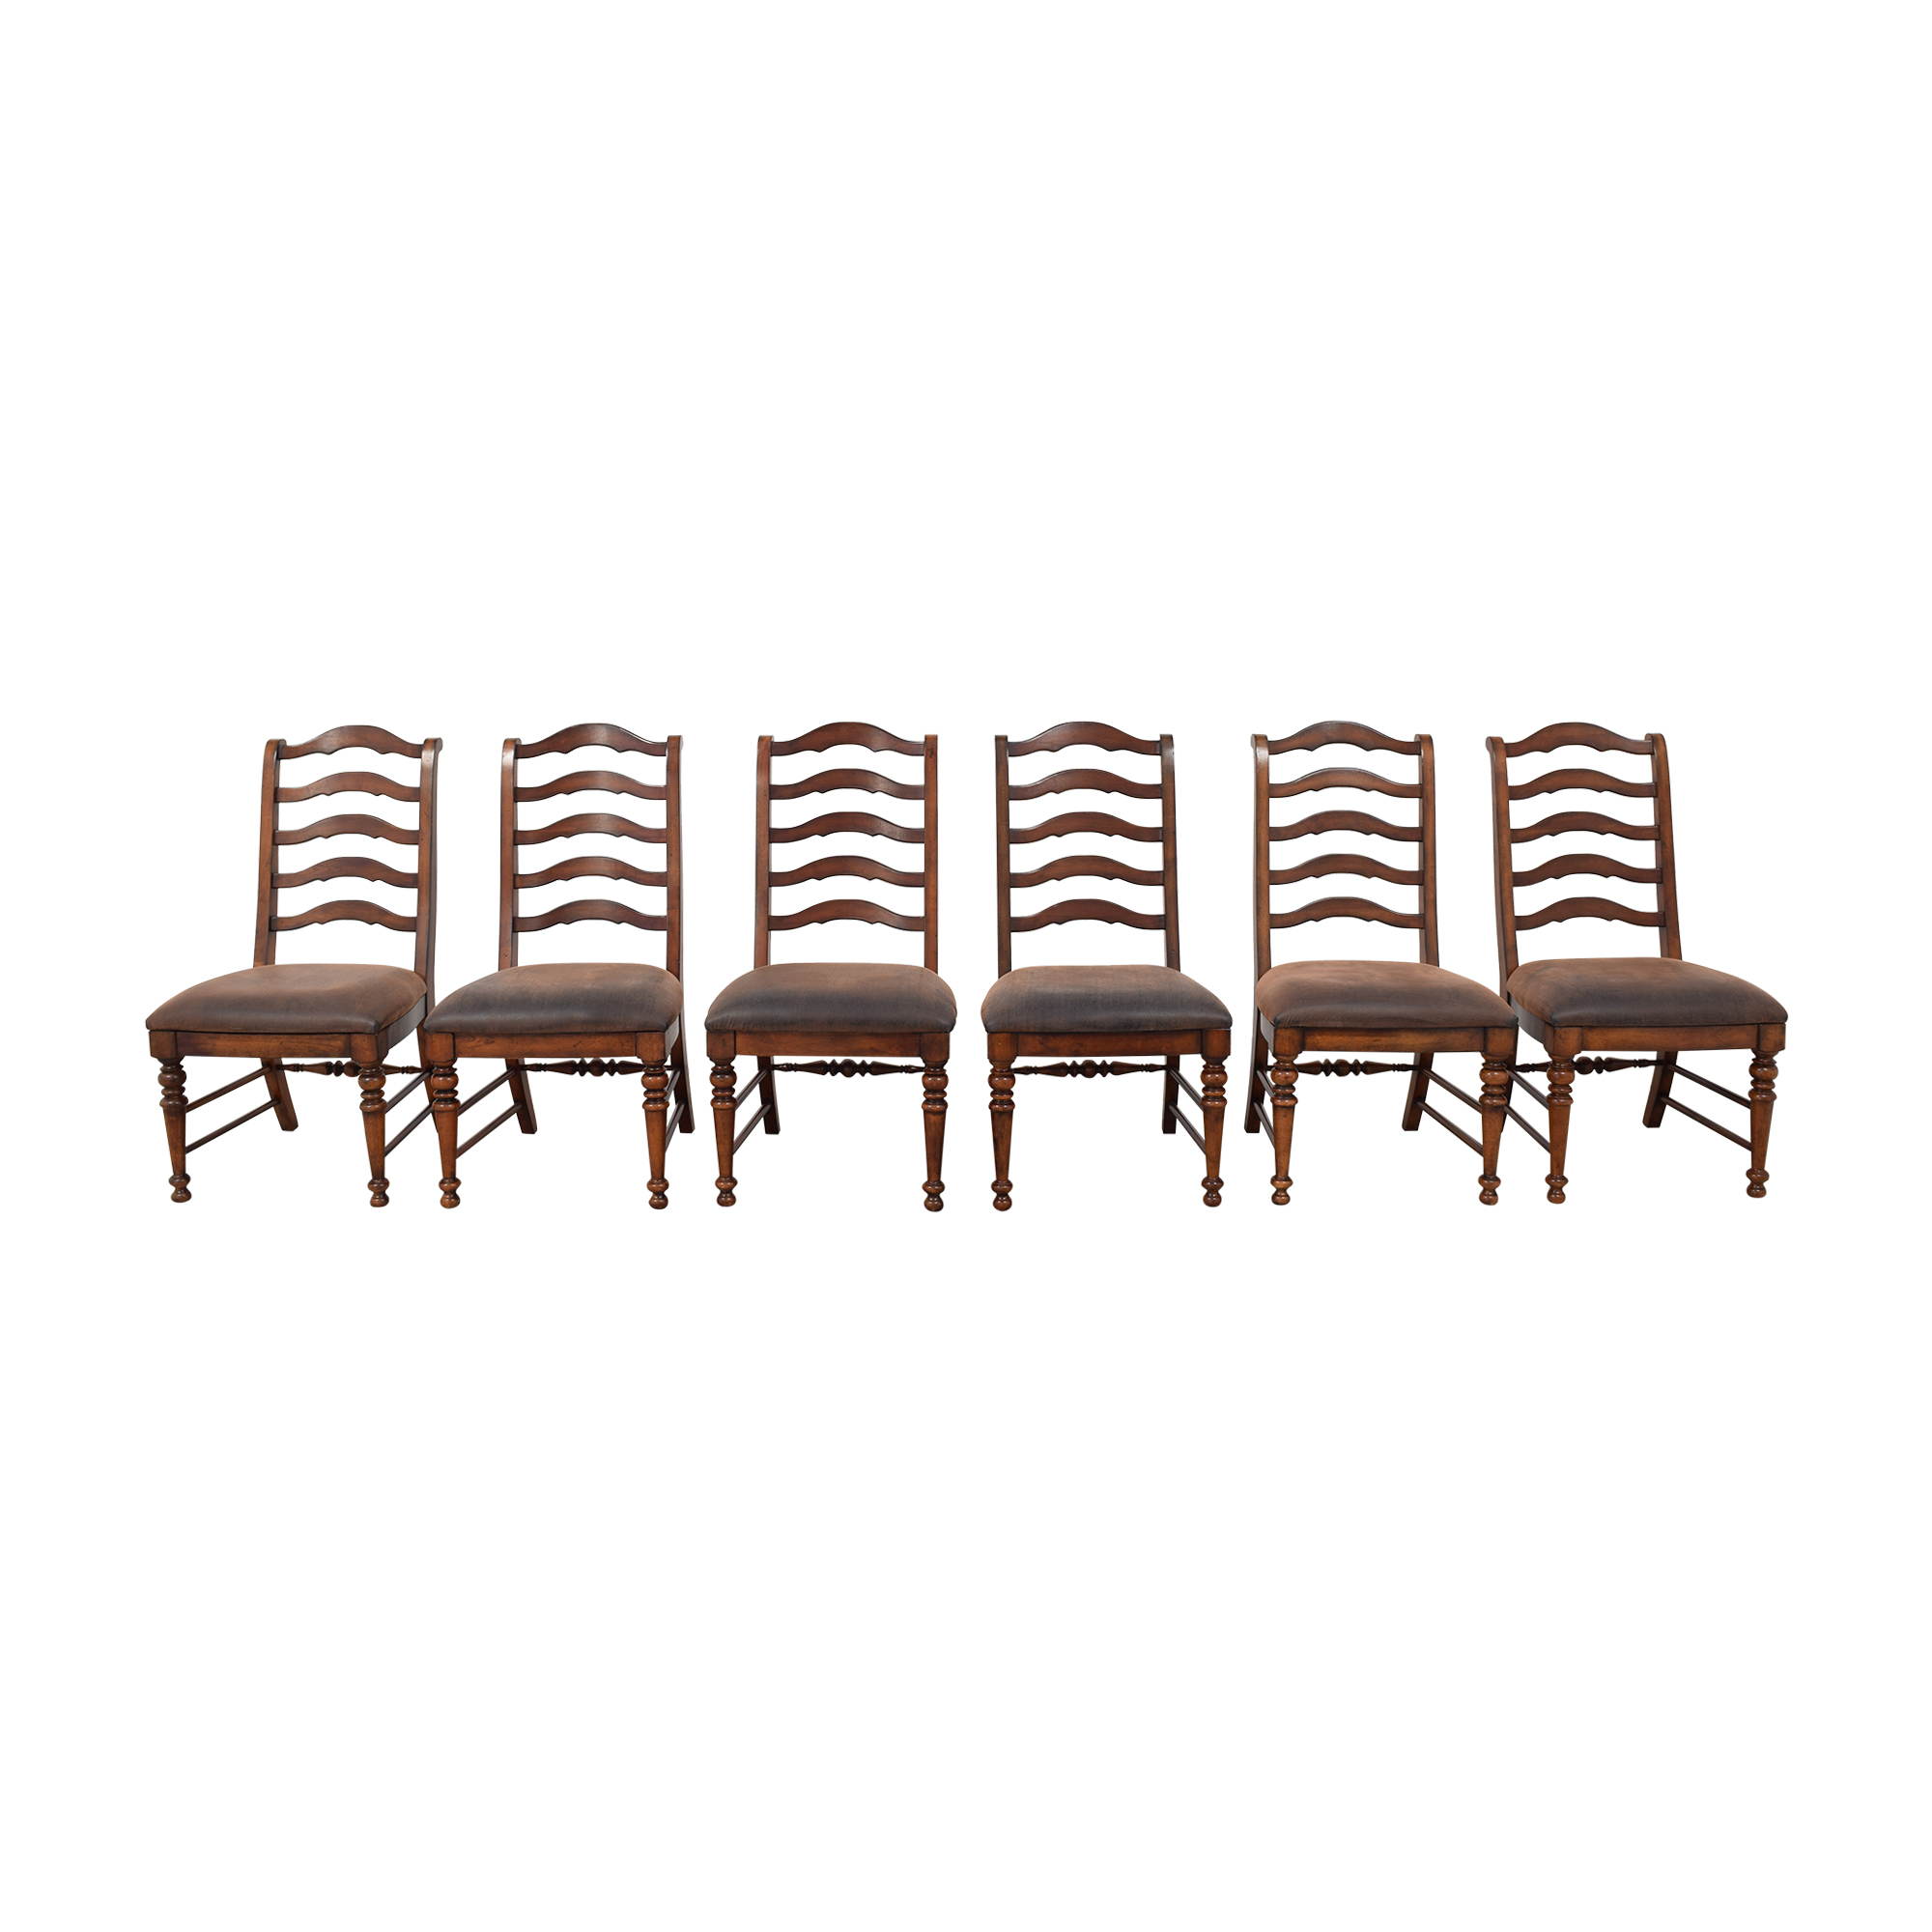 Hooker Furniture Hooker Furniture Waverly Place Ladder Back Dining Chairs nyc